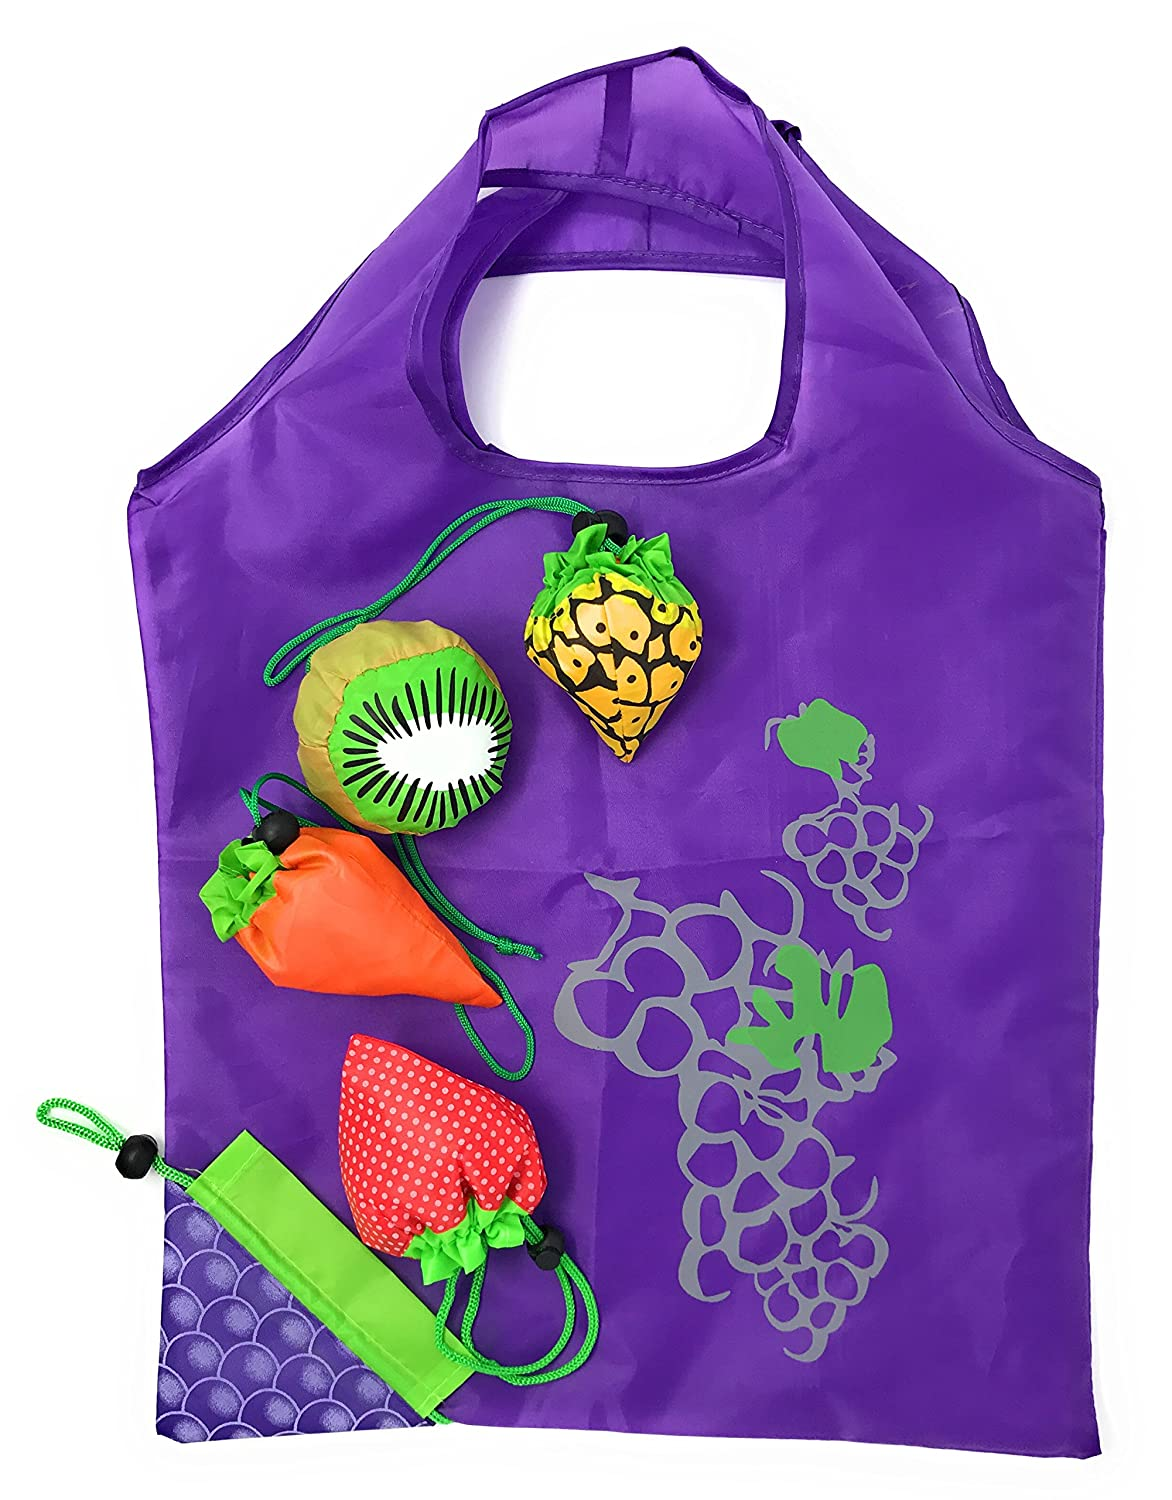 5 xコンパクトショッピングバッグReusable Grocery Totes – Fun Fruit Shaped軽量、強力、と便利なGrocery Bags ( Pack of 5 ) B06XZBLBW7